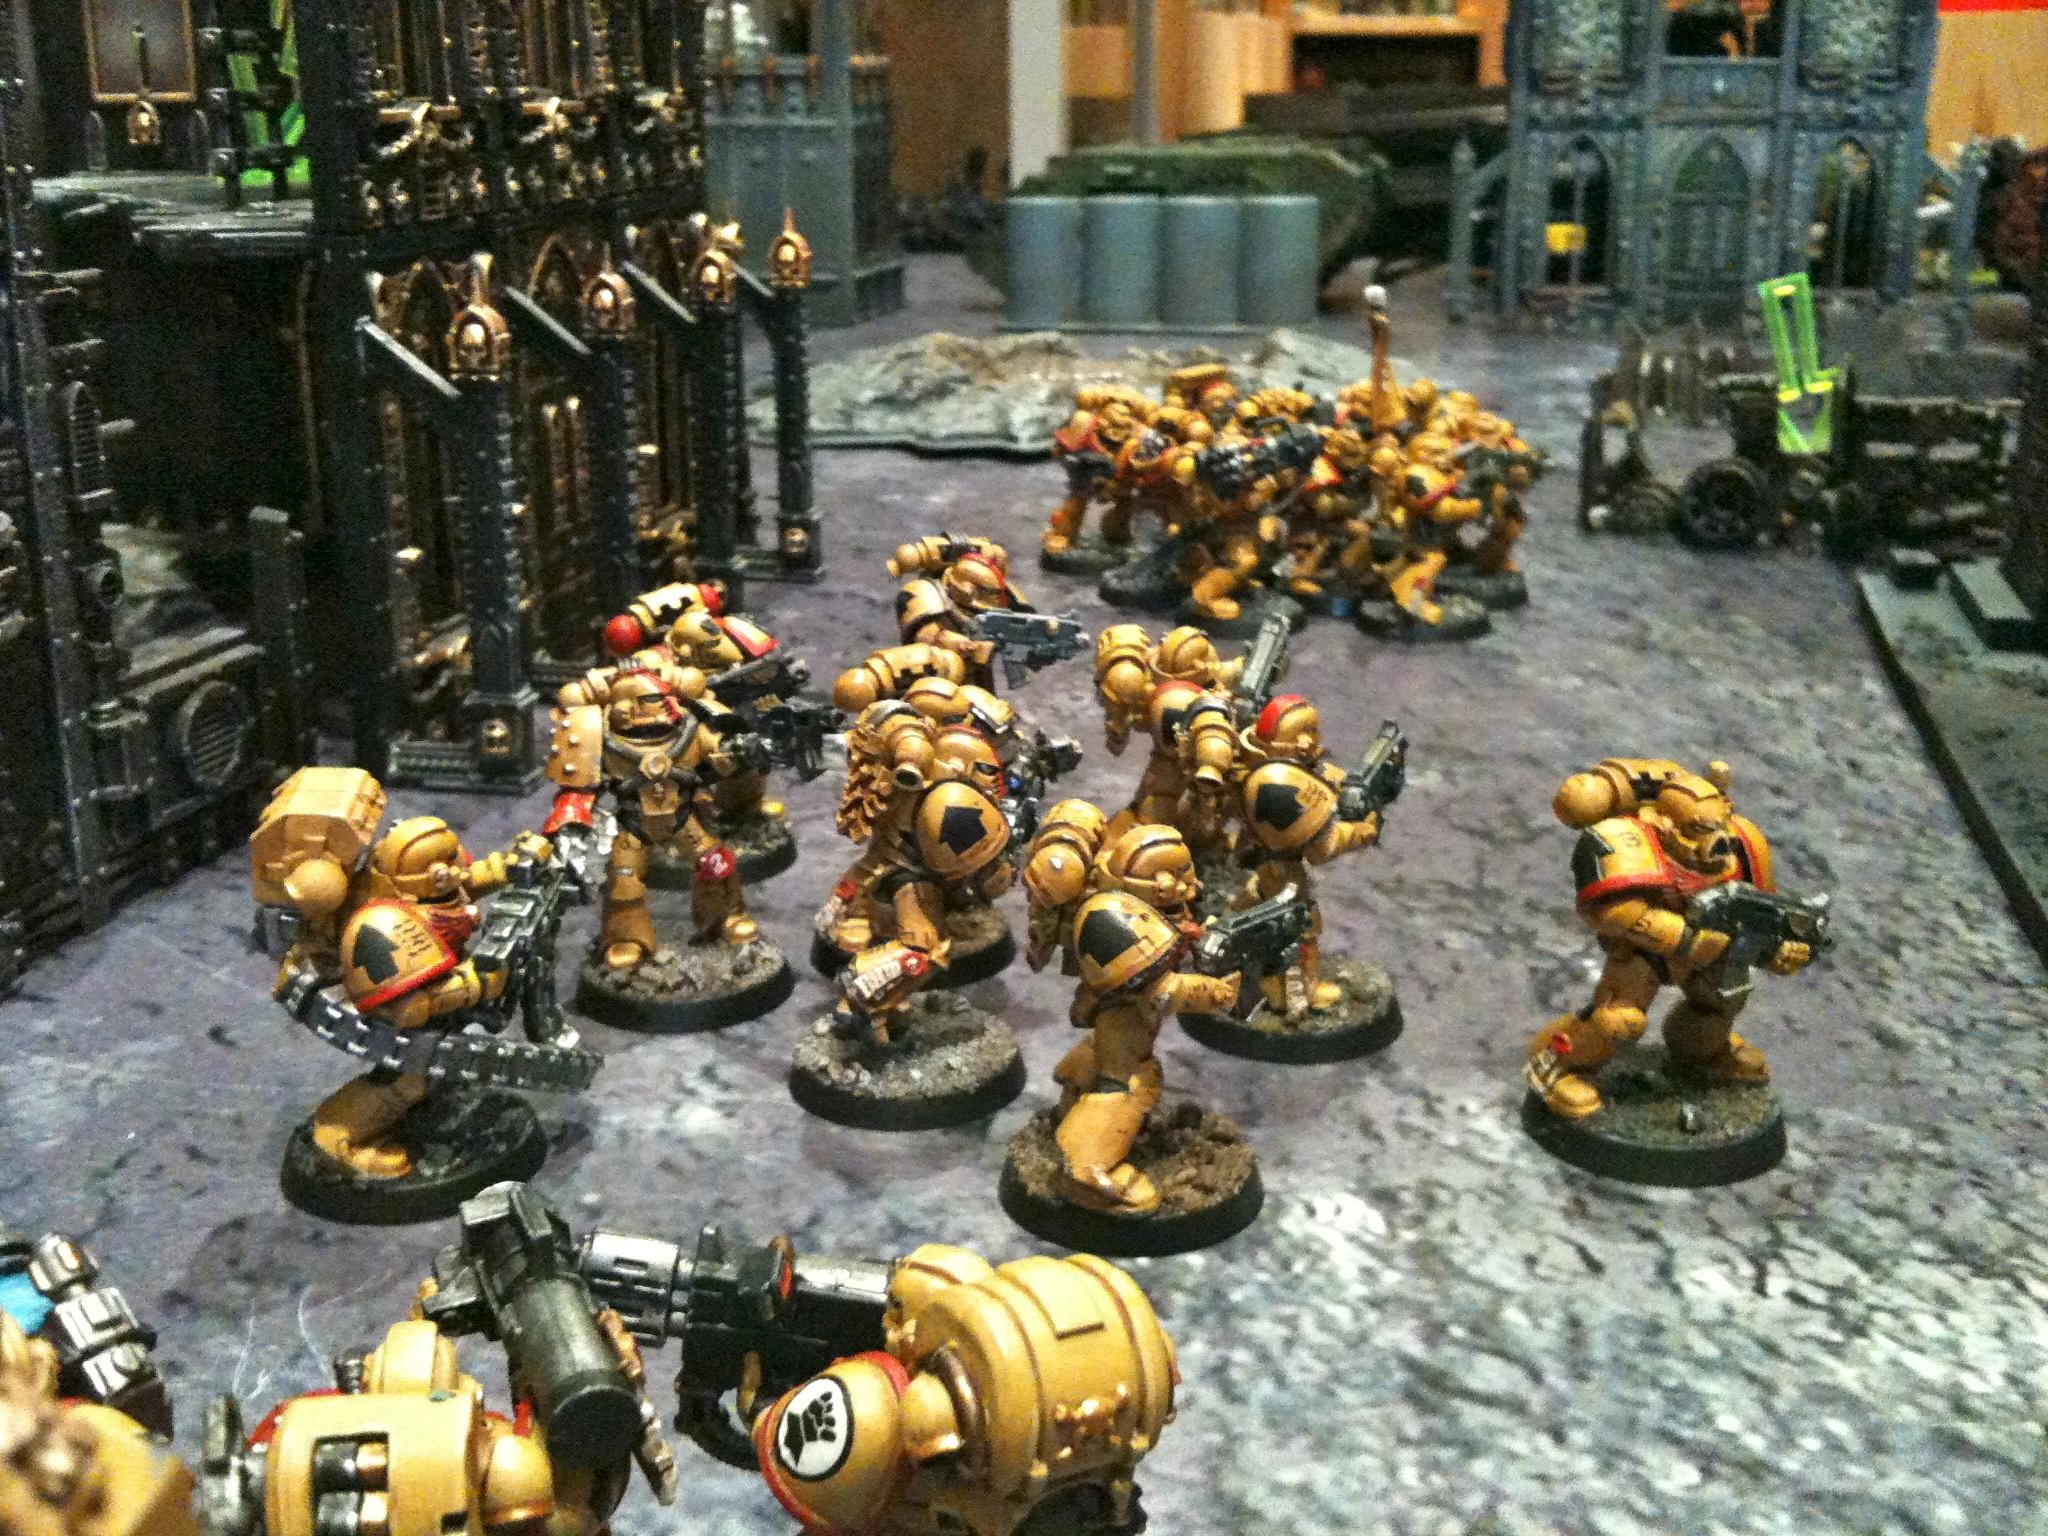 2048x1536 Battle Report, Cities Of Death, Imperial Fists, Salamander, Space Marines,  Terrain - Imperial Fist and Salamander Vs. Chaos - Gallery - DakkaDakka |  We've ...